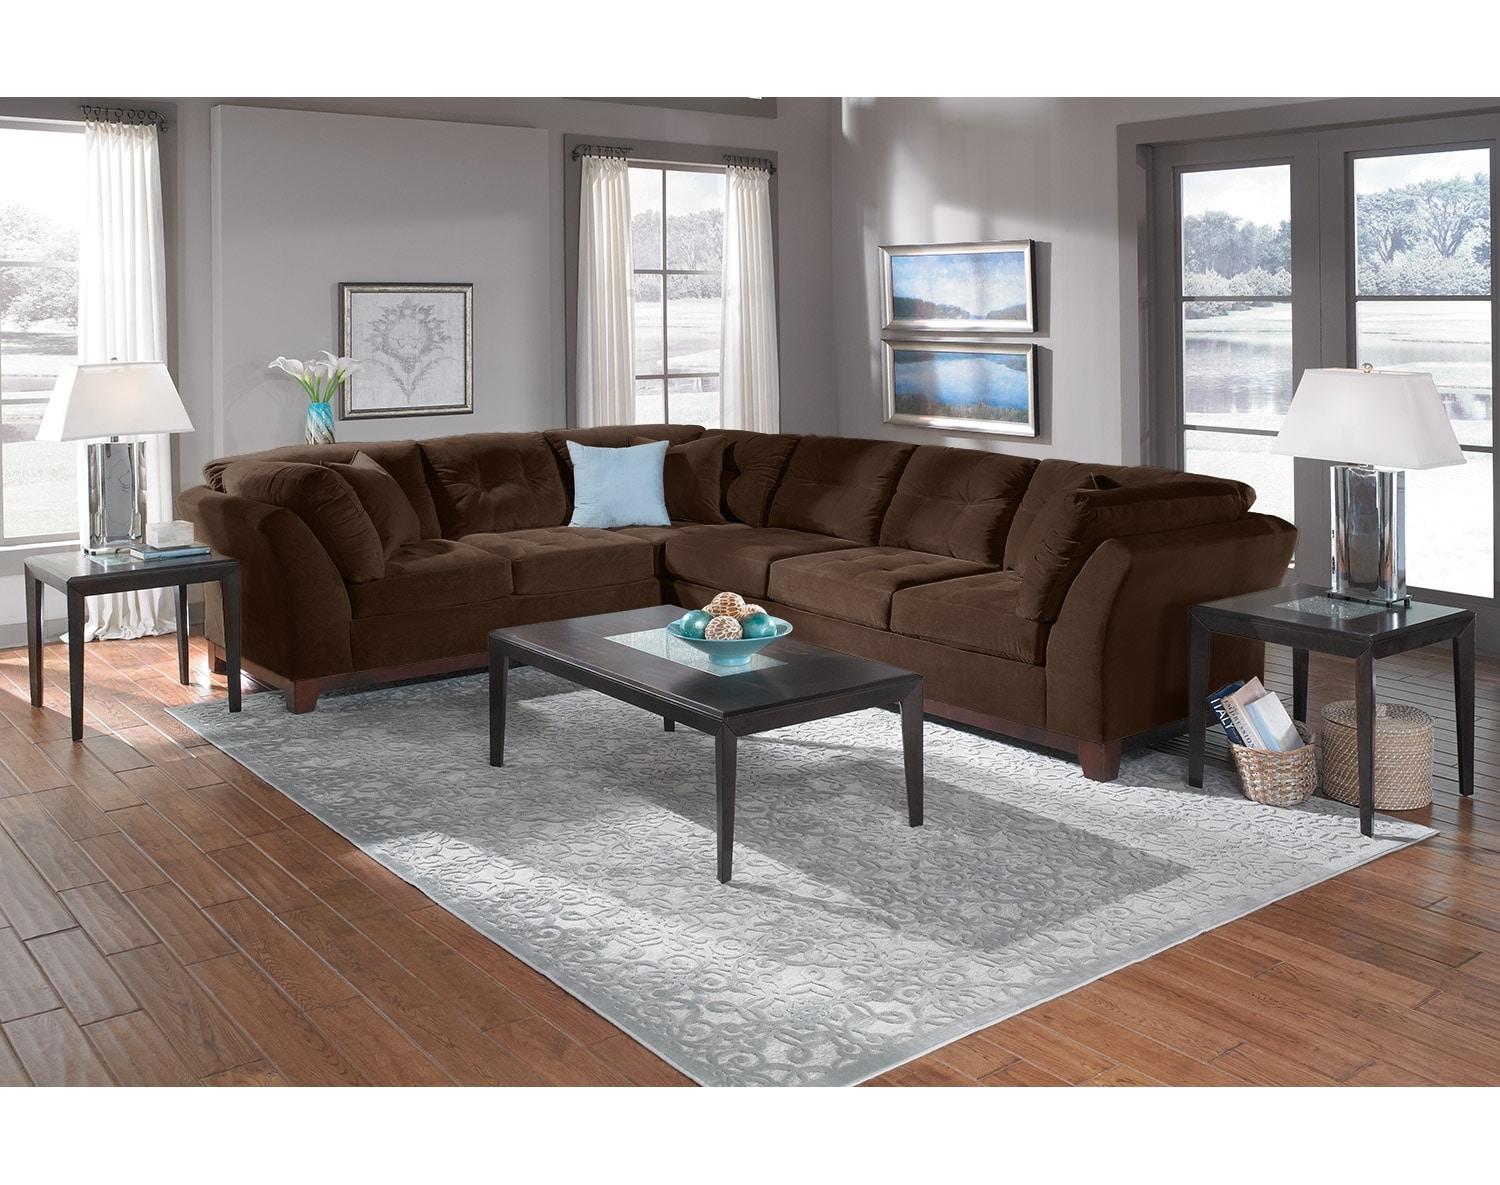 The Solace Sectional Collection - Chocolate